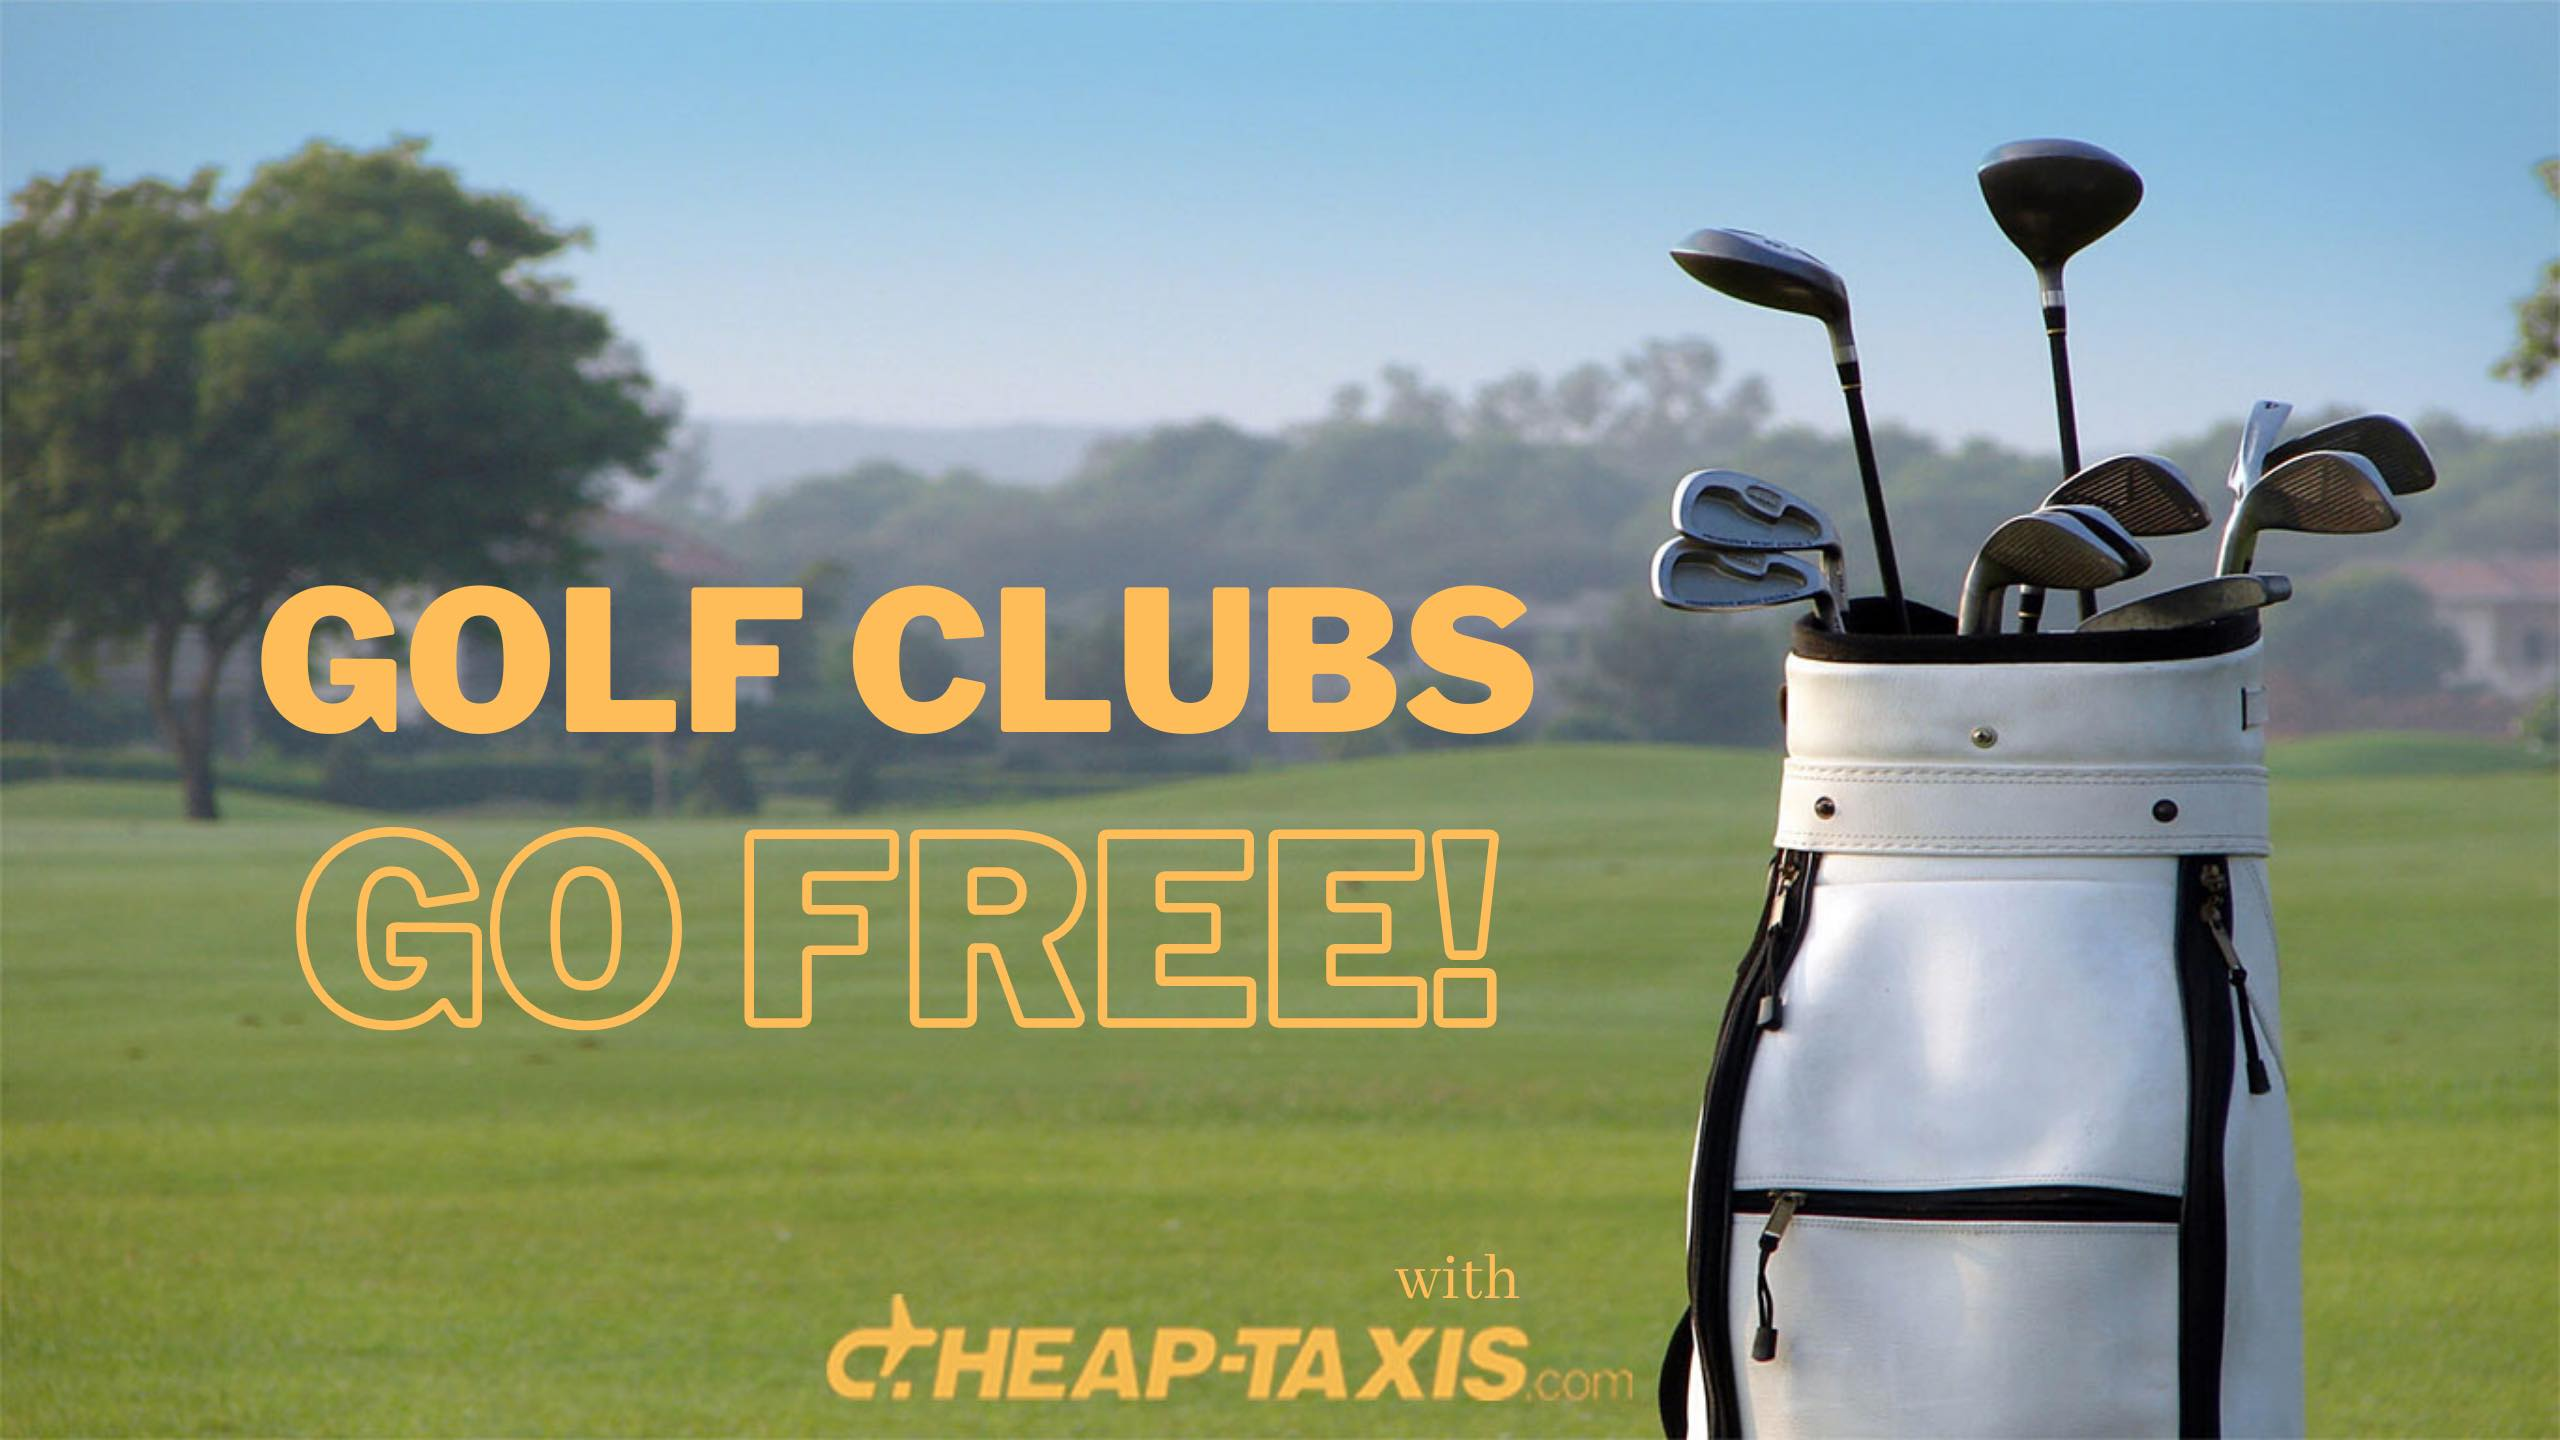 GOLF CLUBS GO FREE